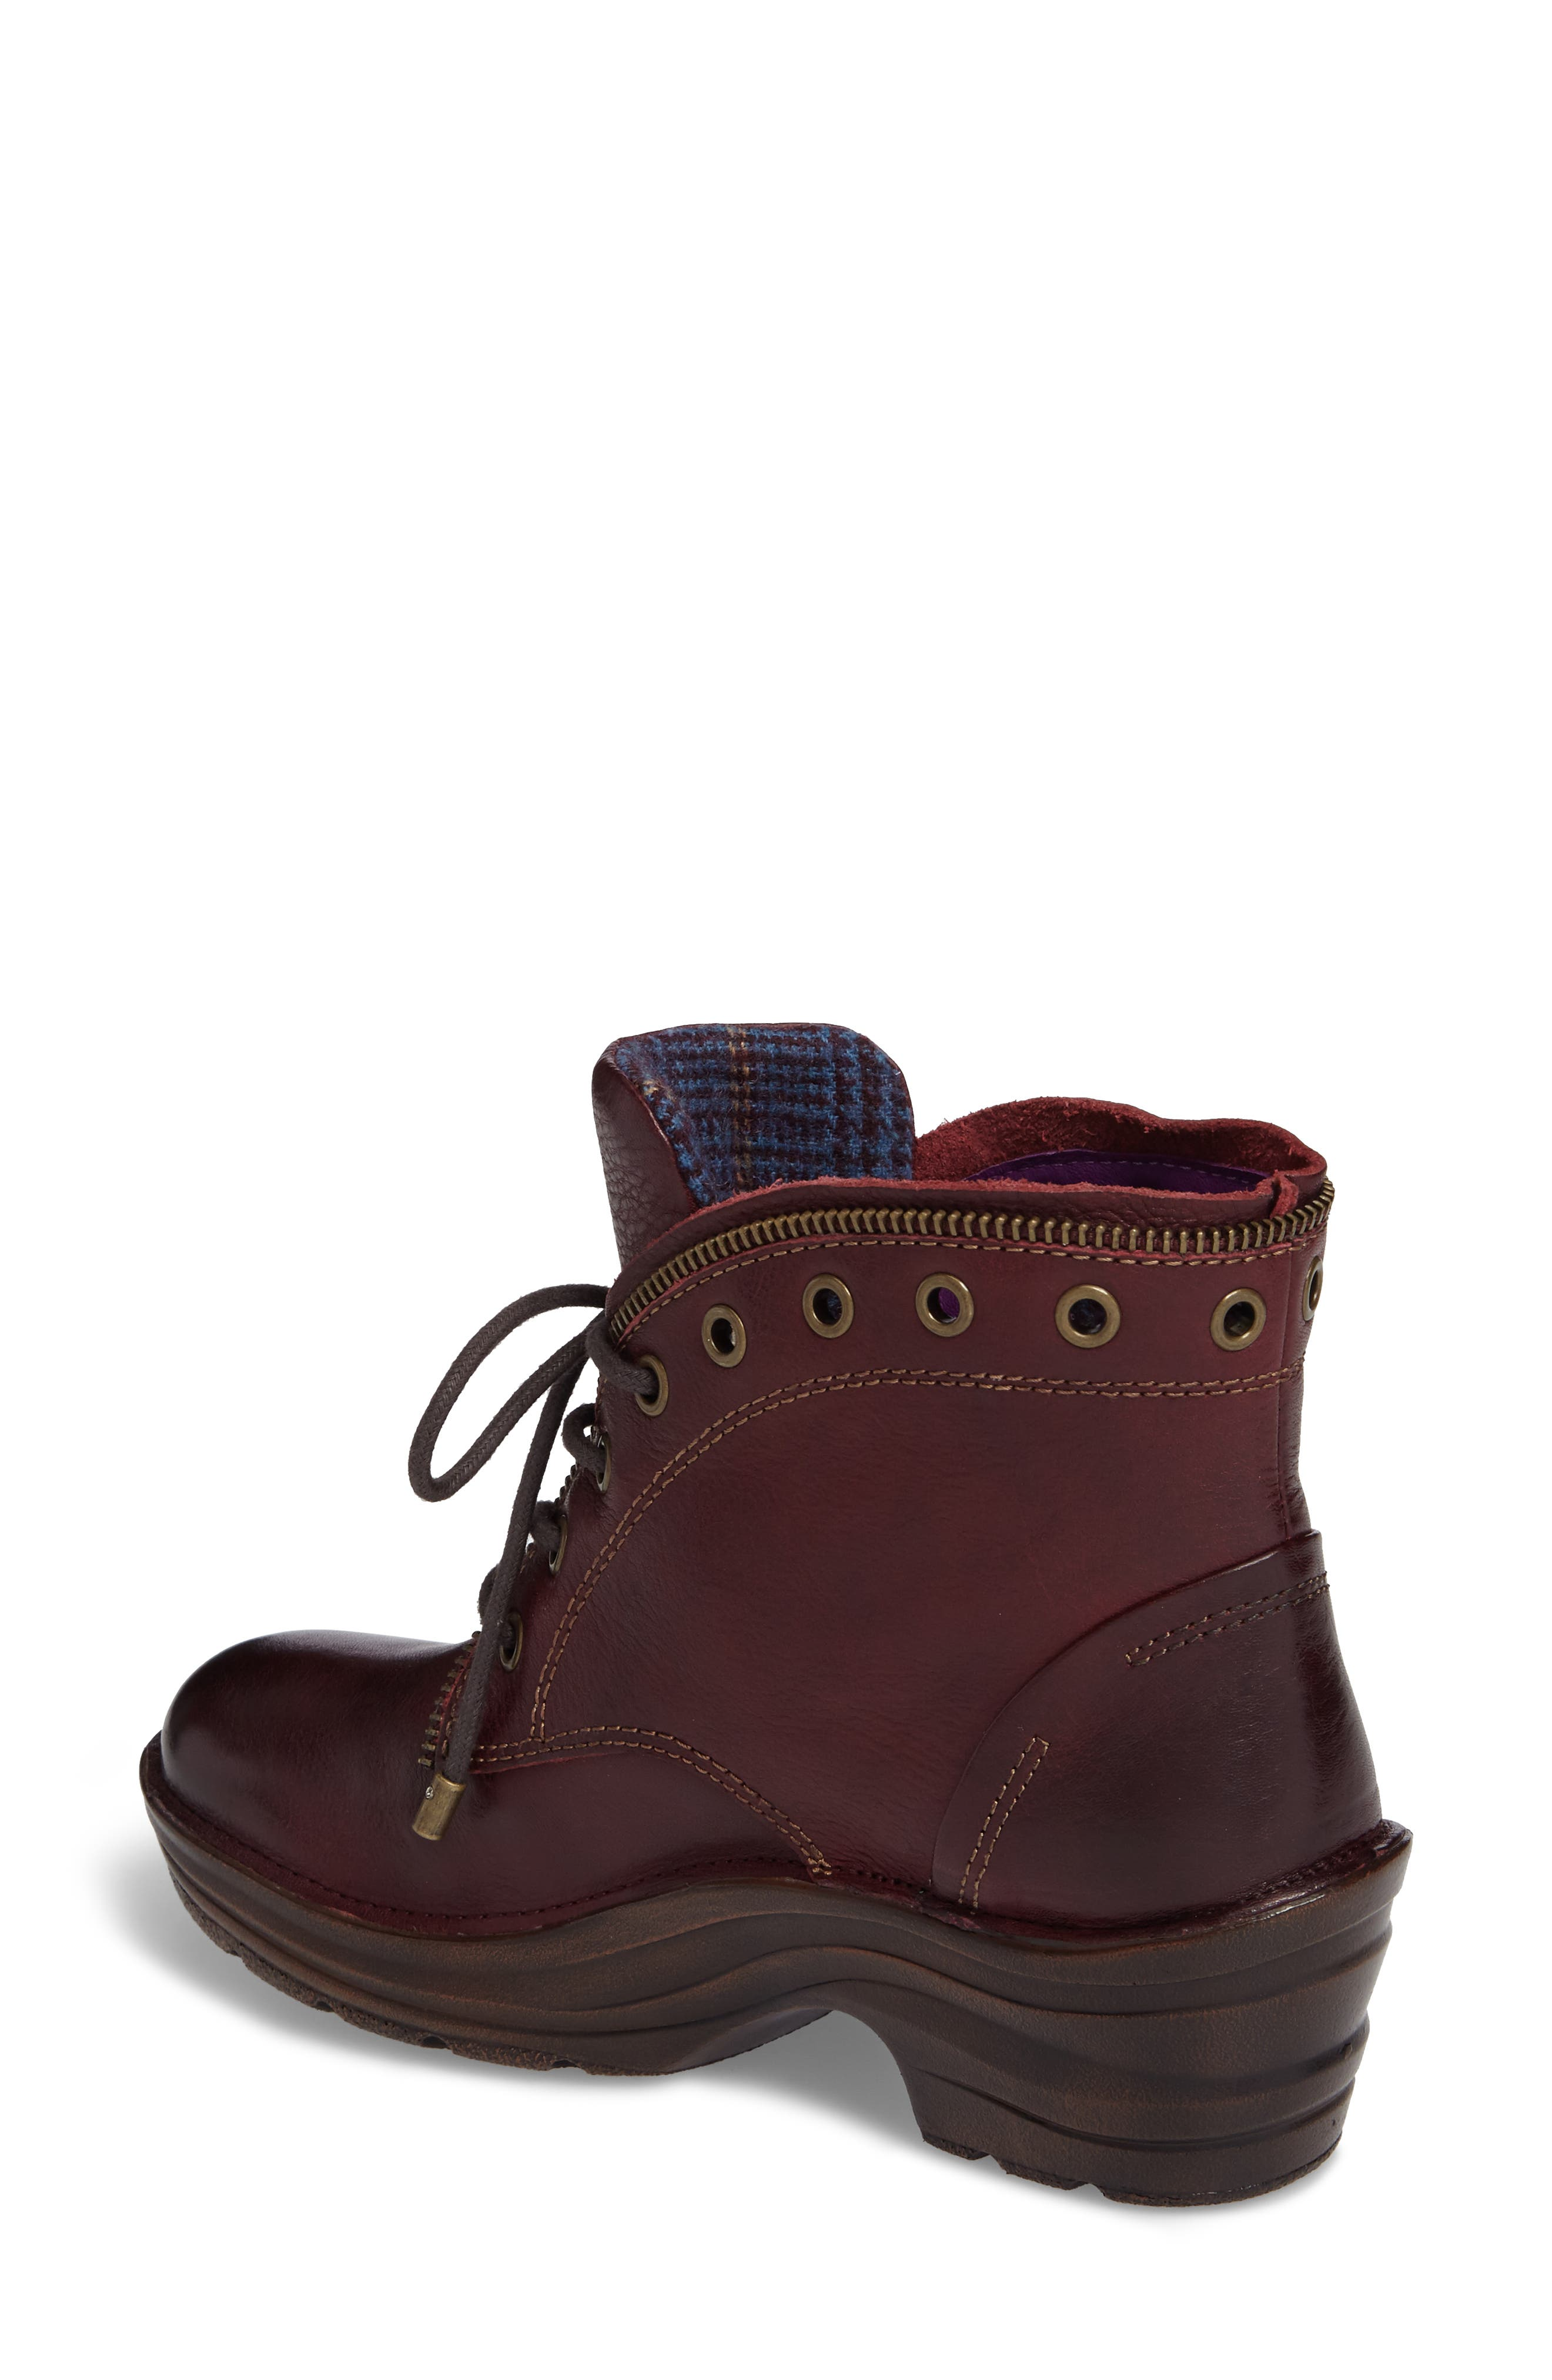 Rangely Boot,                             Alternate thumbnail 2, color,                             Marsala Red Leather